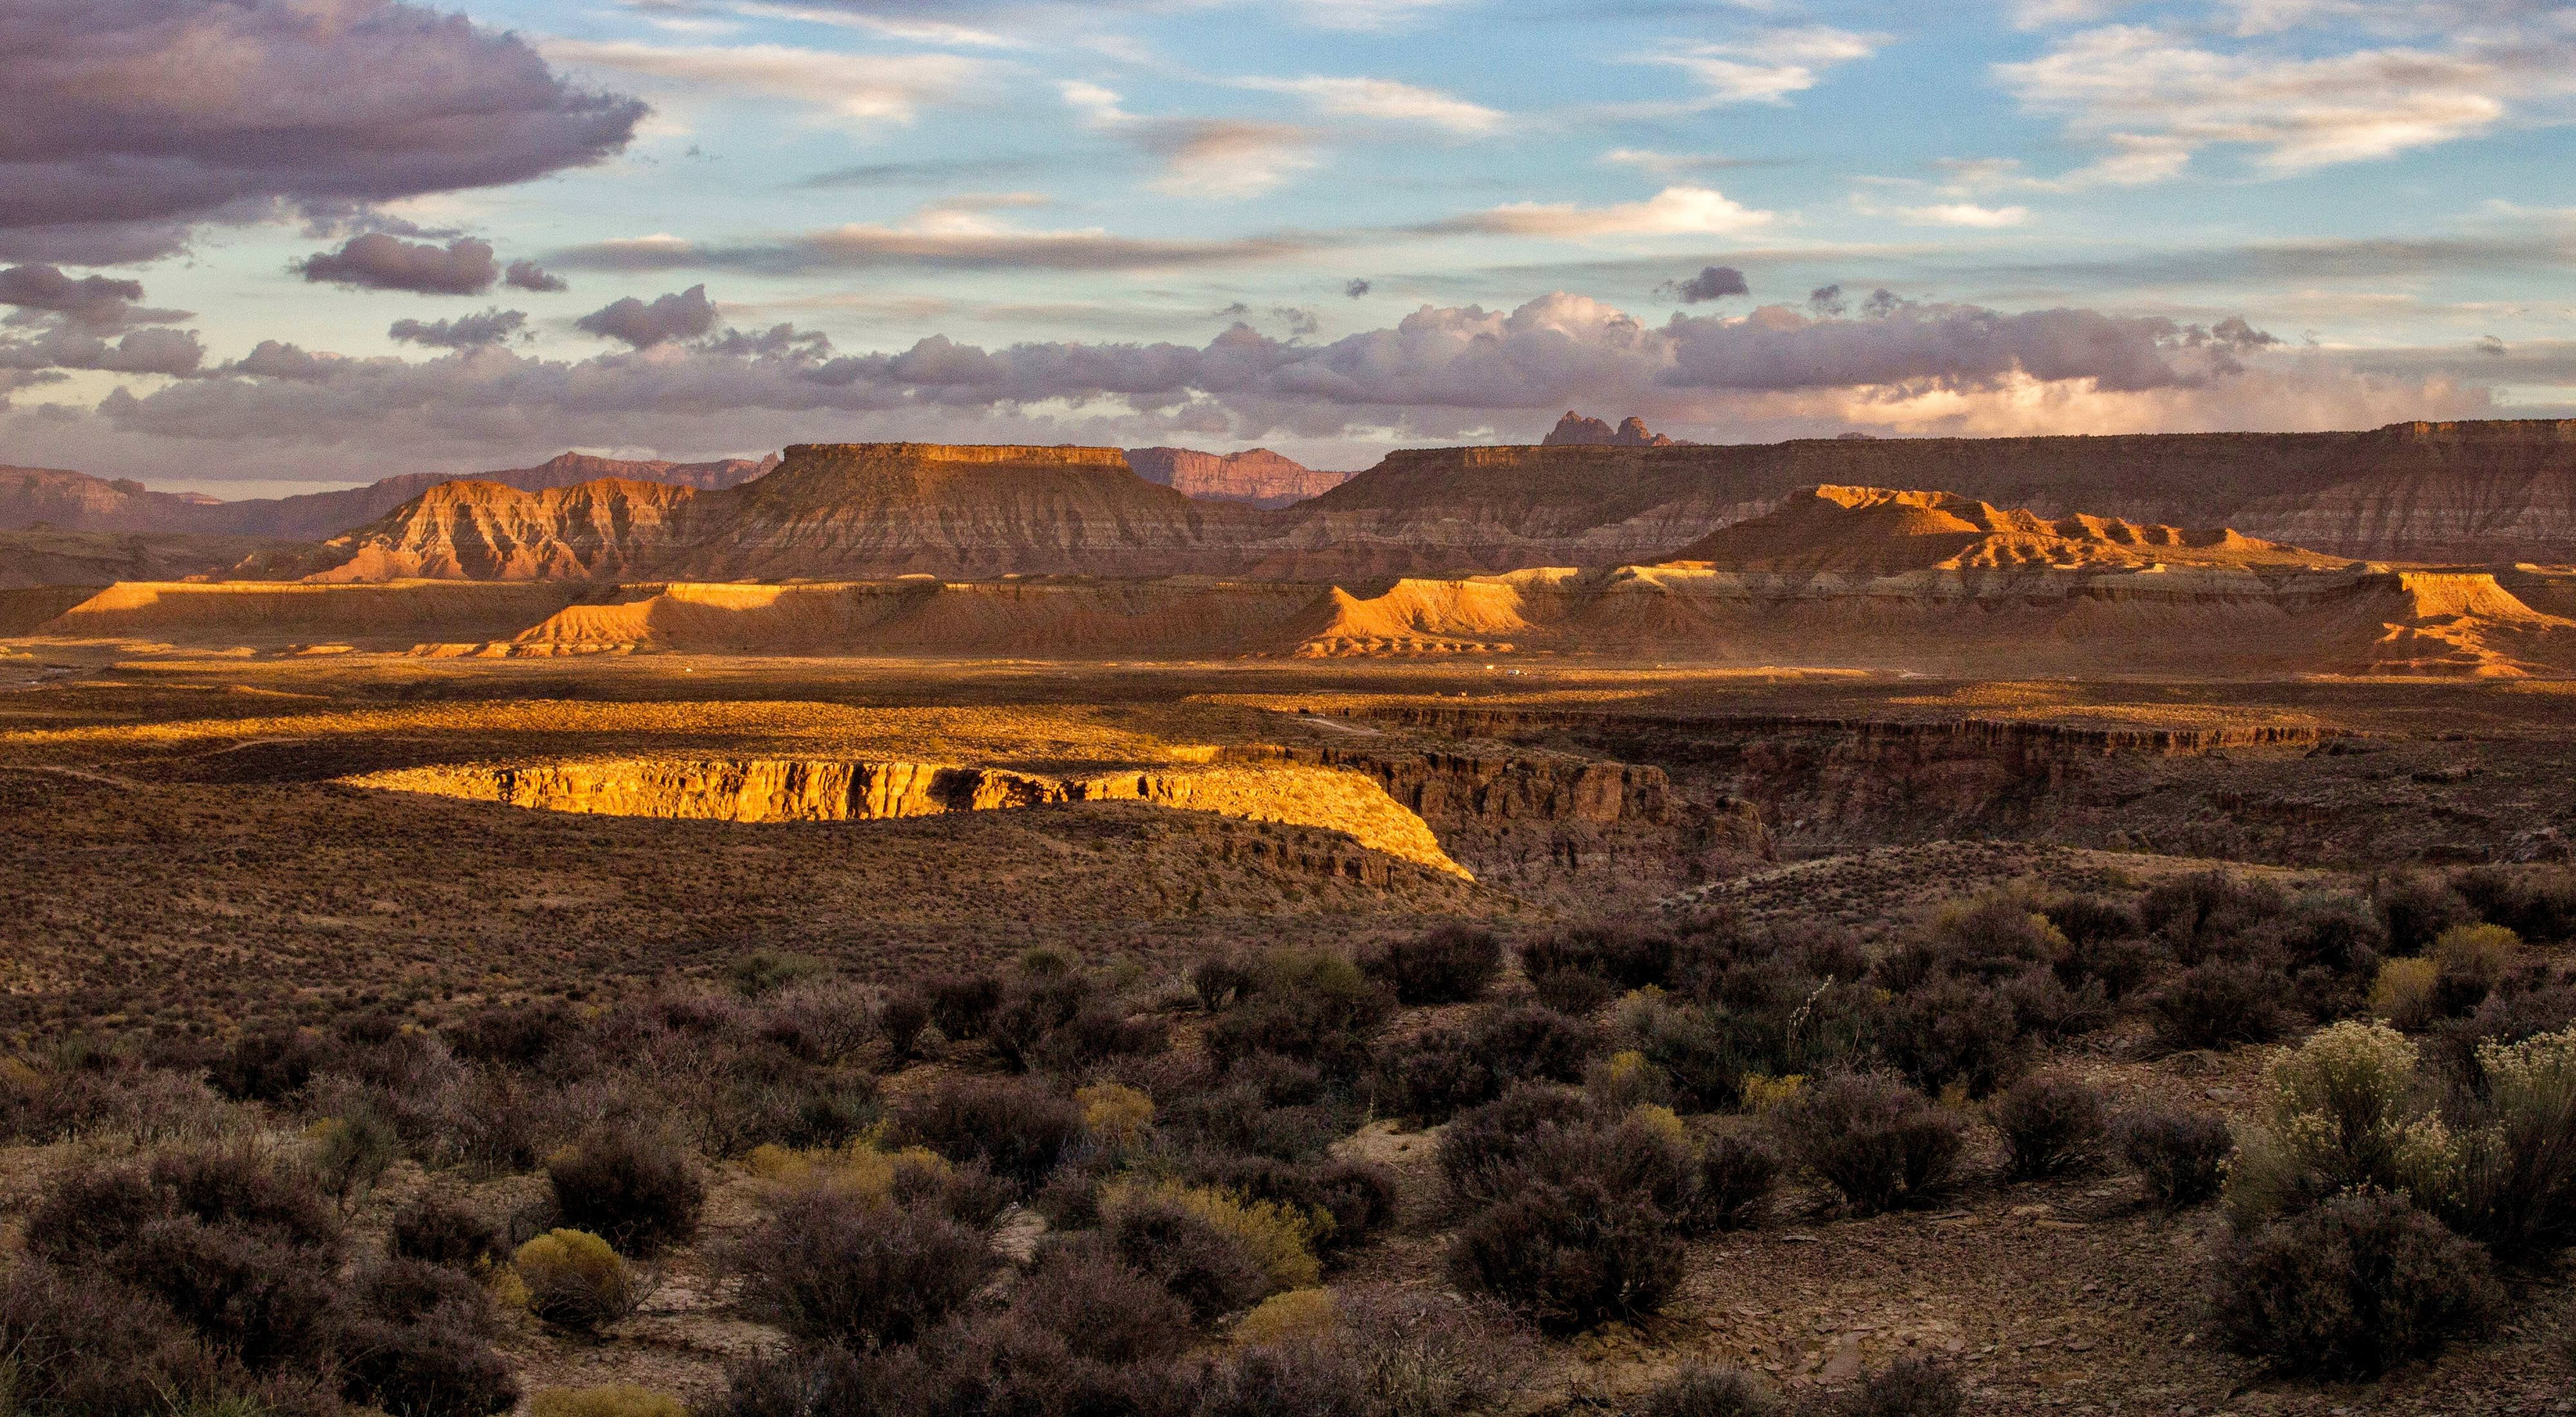 Late afternoon panorama view of rocky outcroppings.